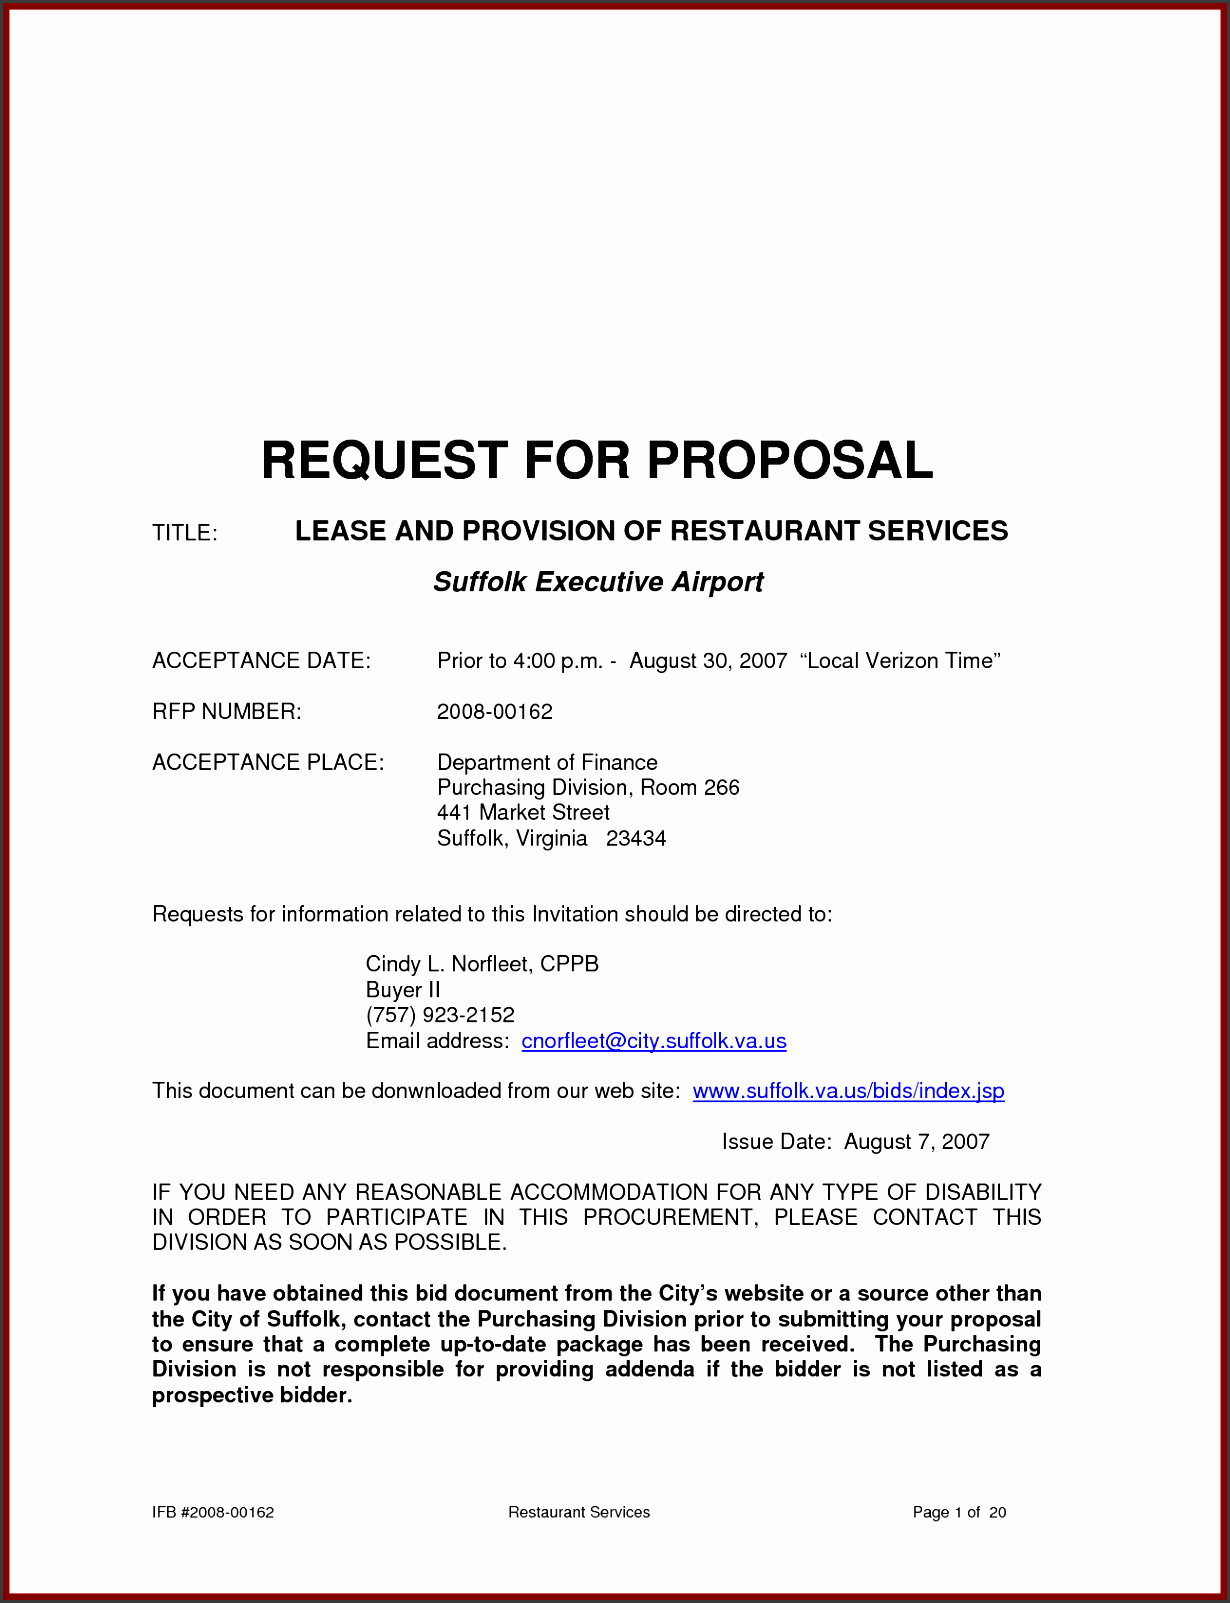 Sample Business Proposal Letter Template on for project, for talent, for ppc service,